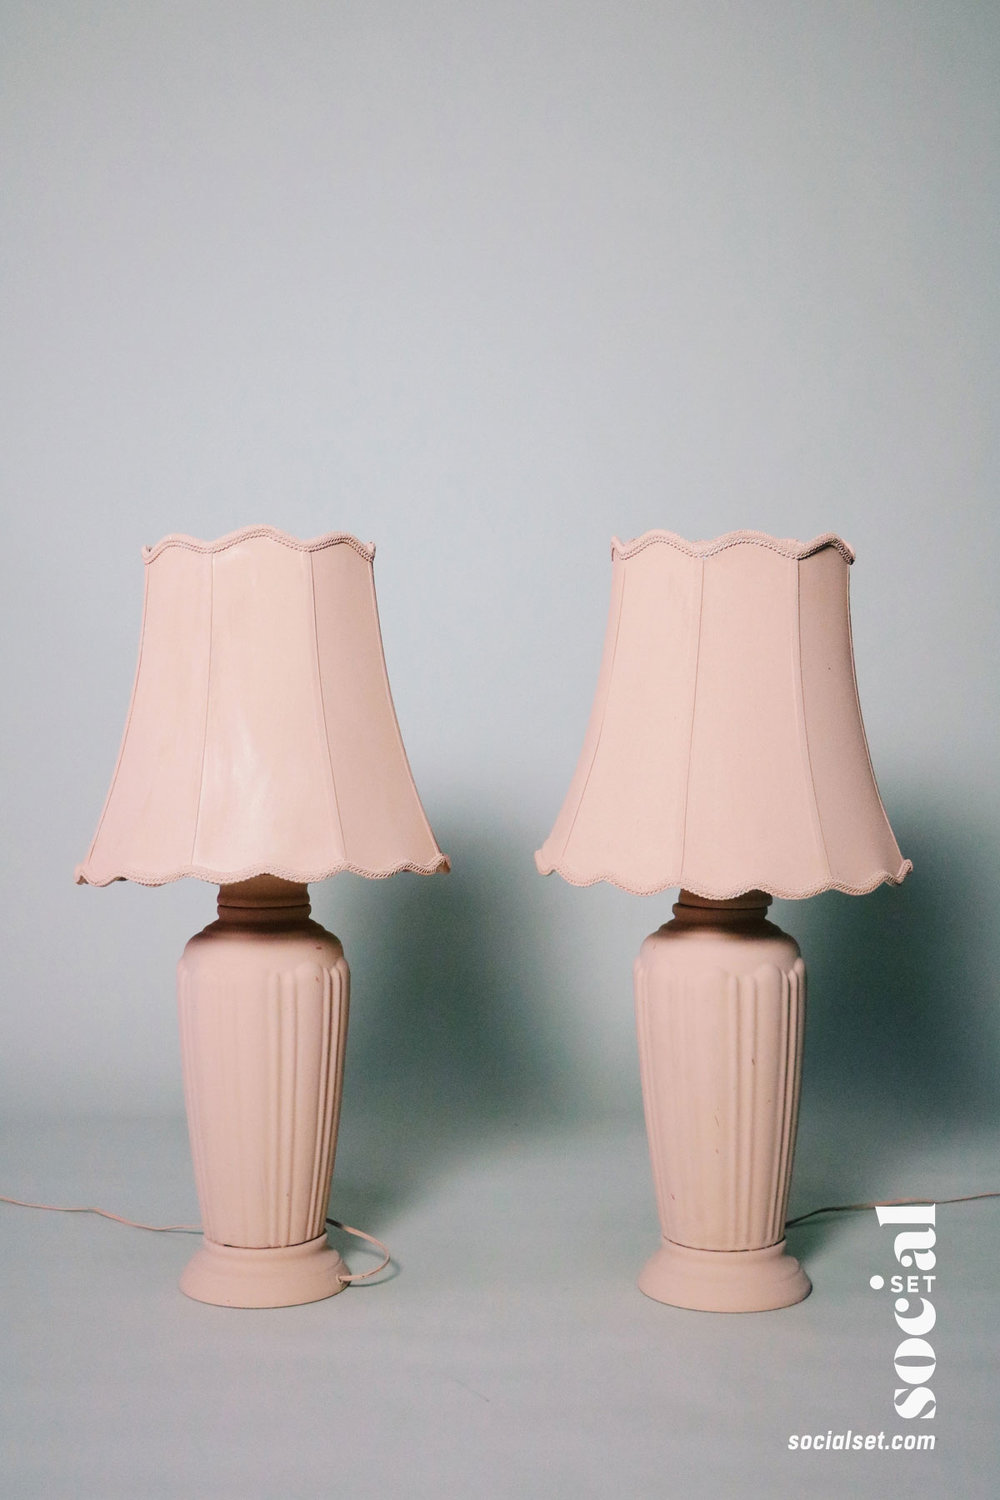 Hand Painted Rose Pink Lamps